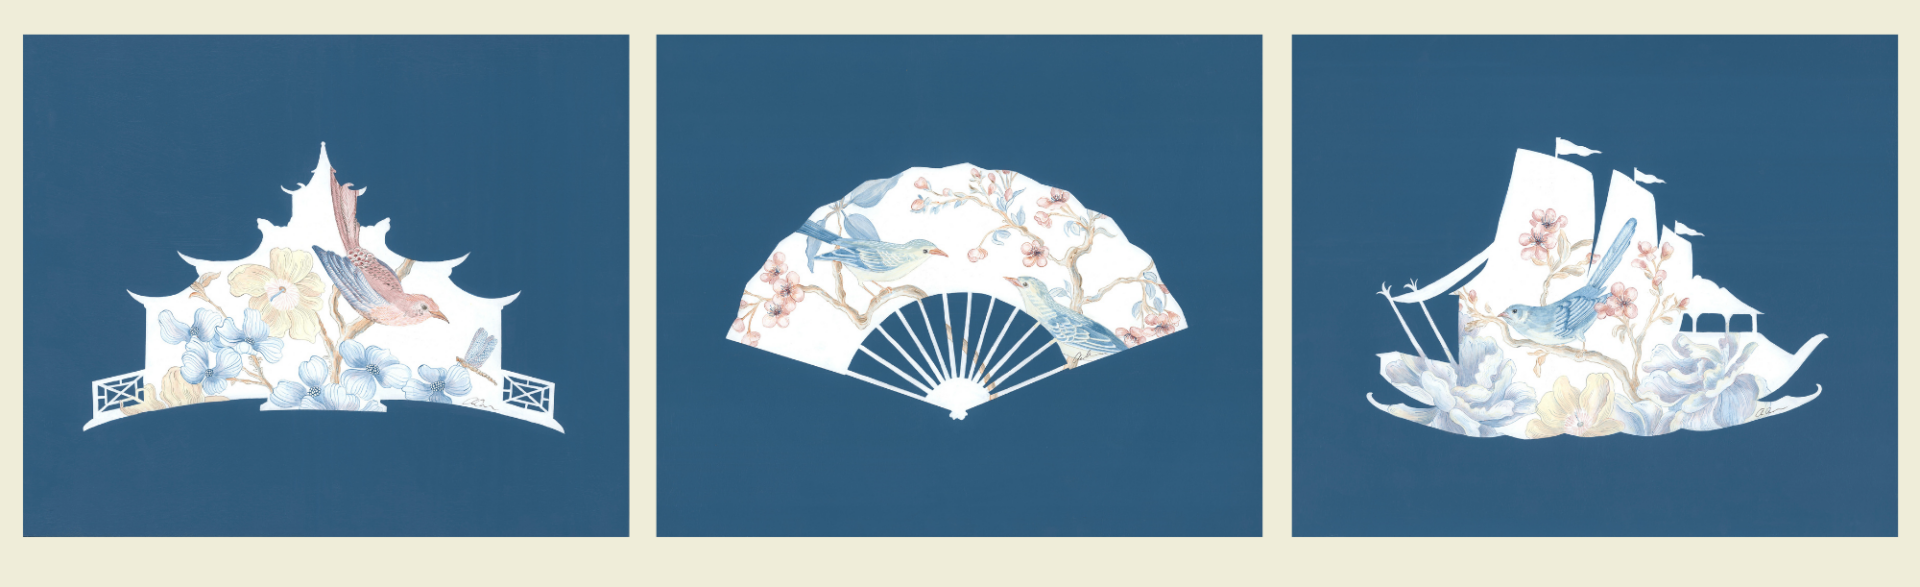 Blue-and-White-Chinoiserie-Silhouettes-by-Allison-Cosmos